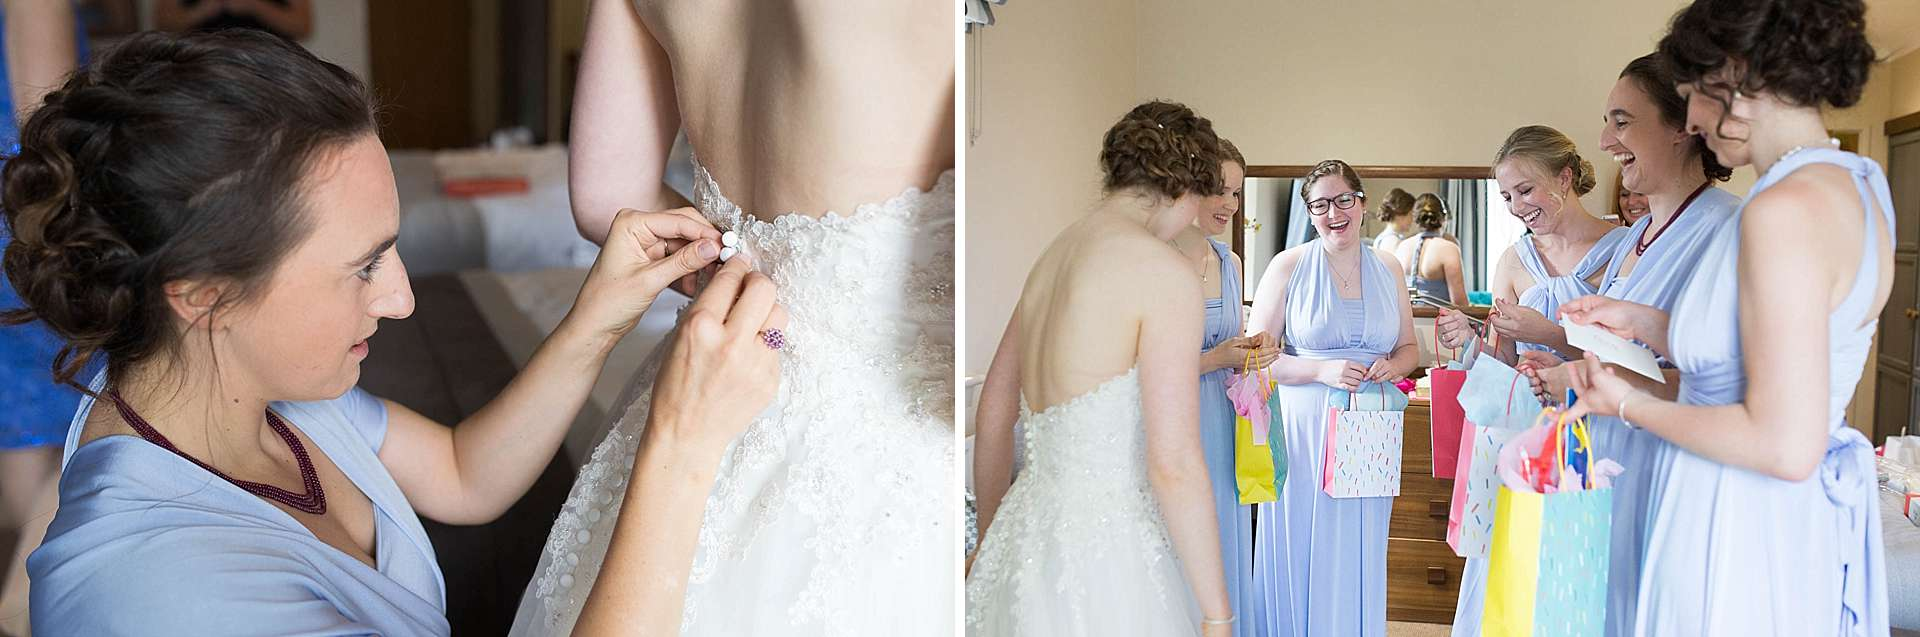 Bridal prep at Oxford Spires Hotel